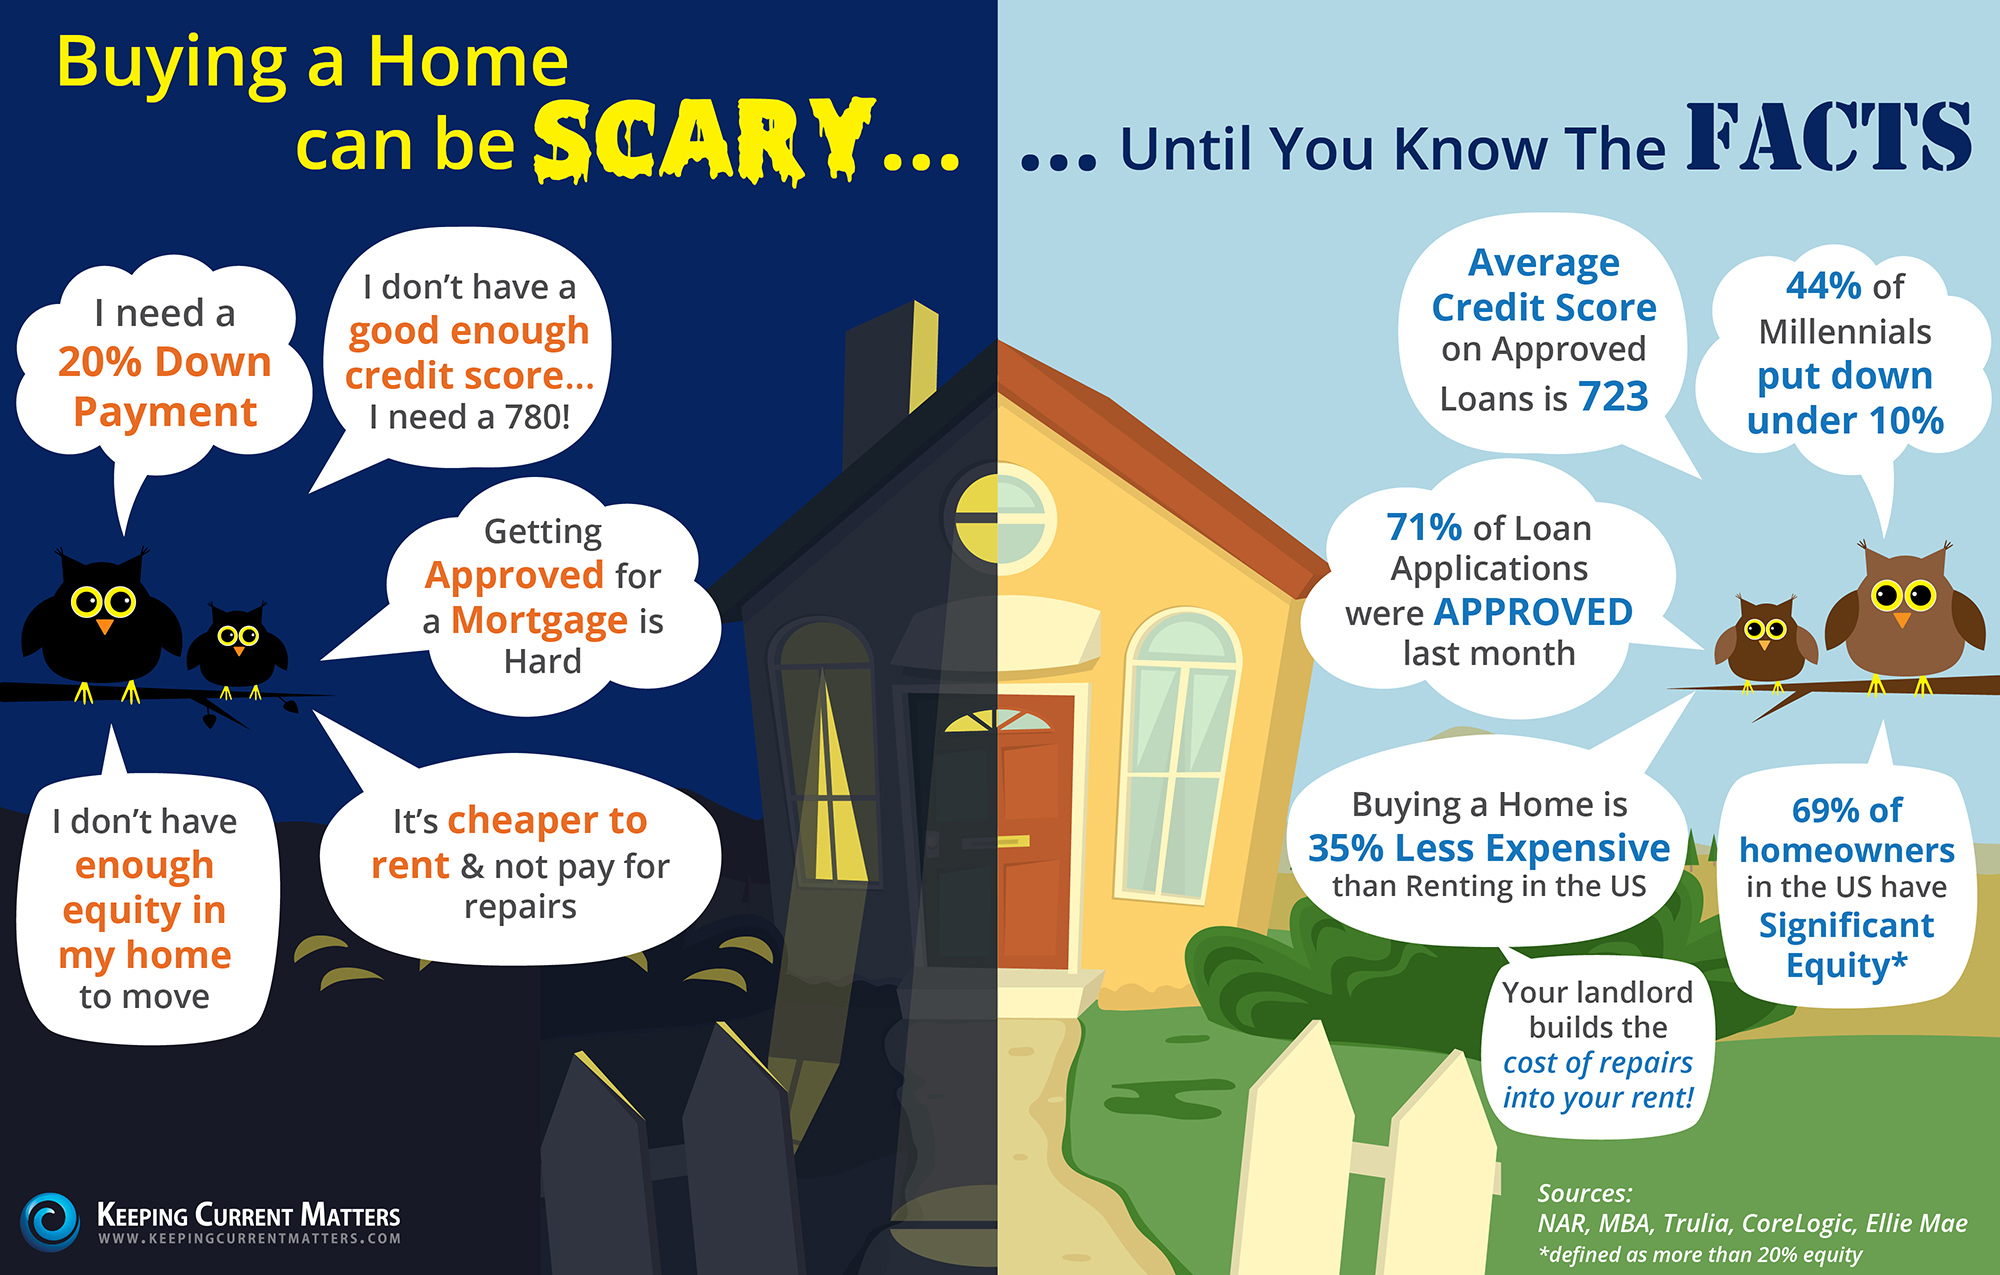 Facts about buying a home - Buying A Home Can Be Scary Until You Know The Facts